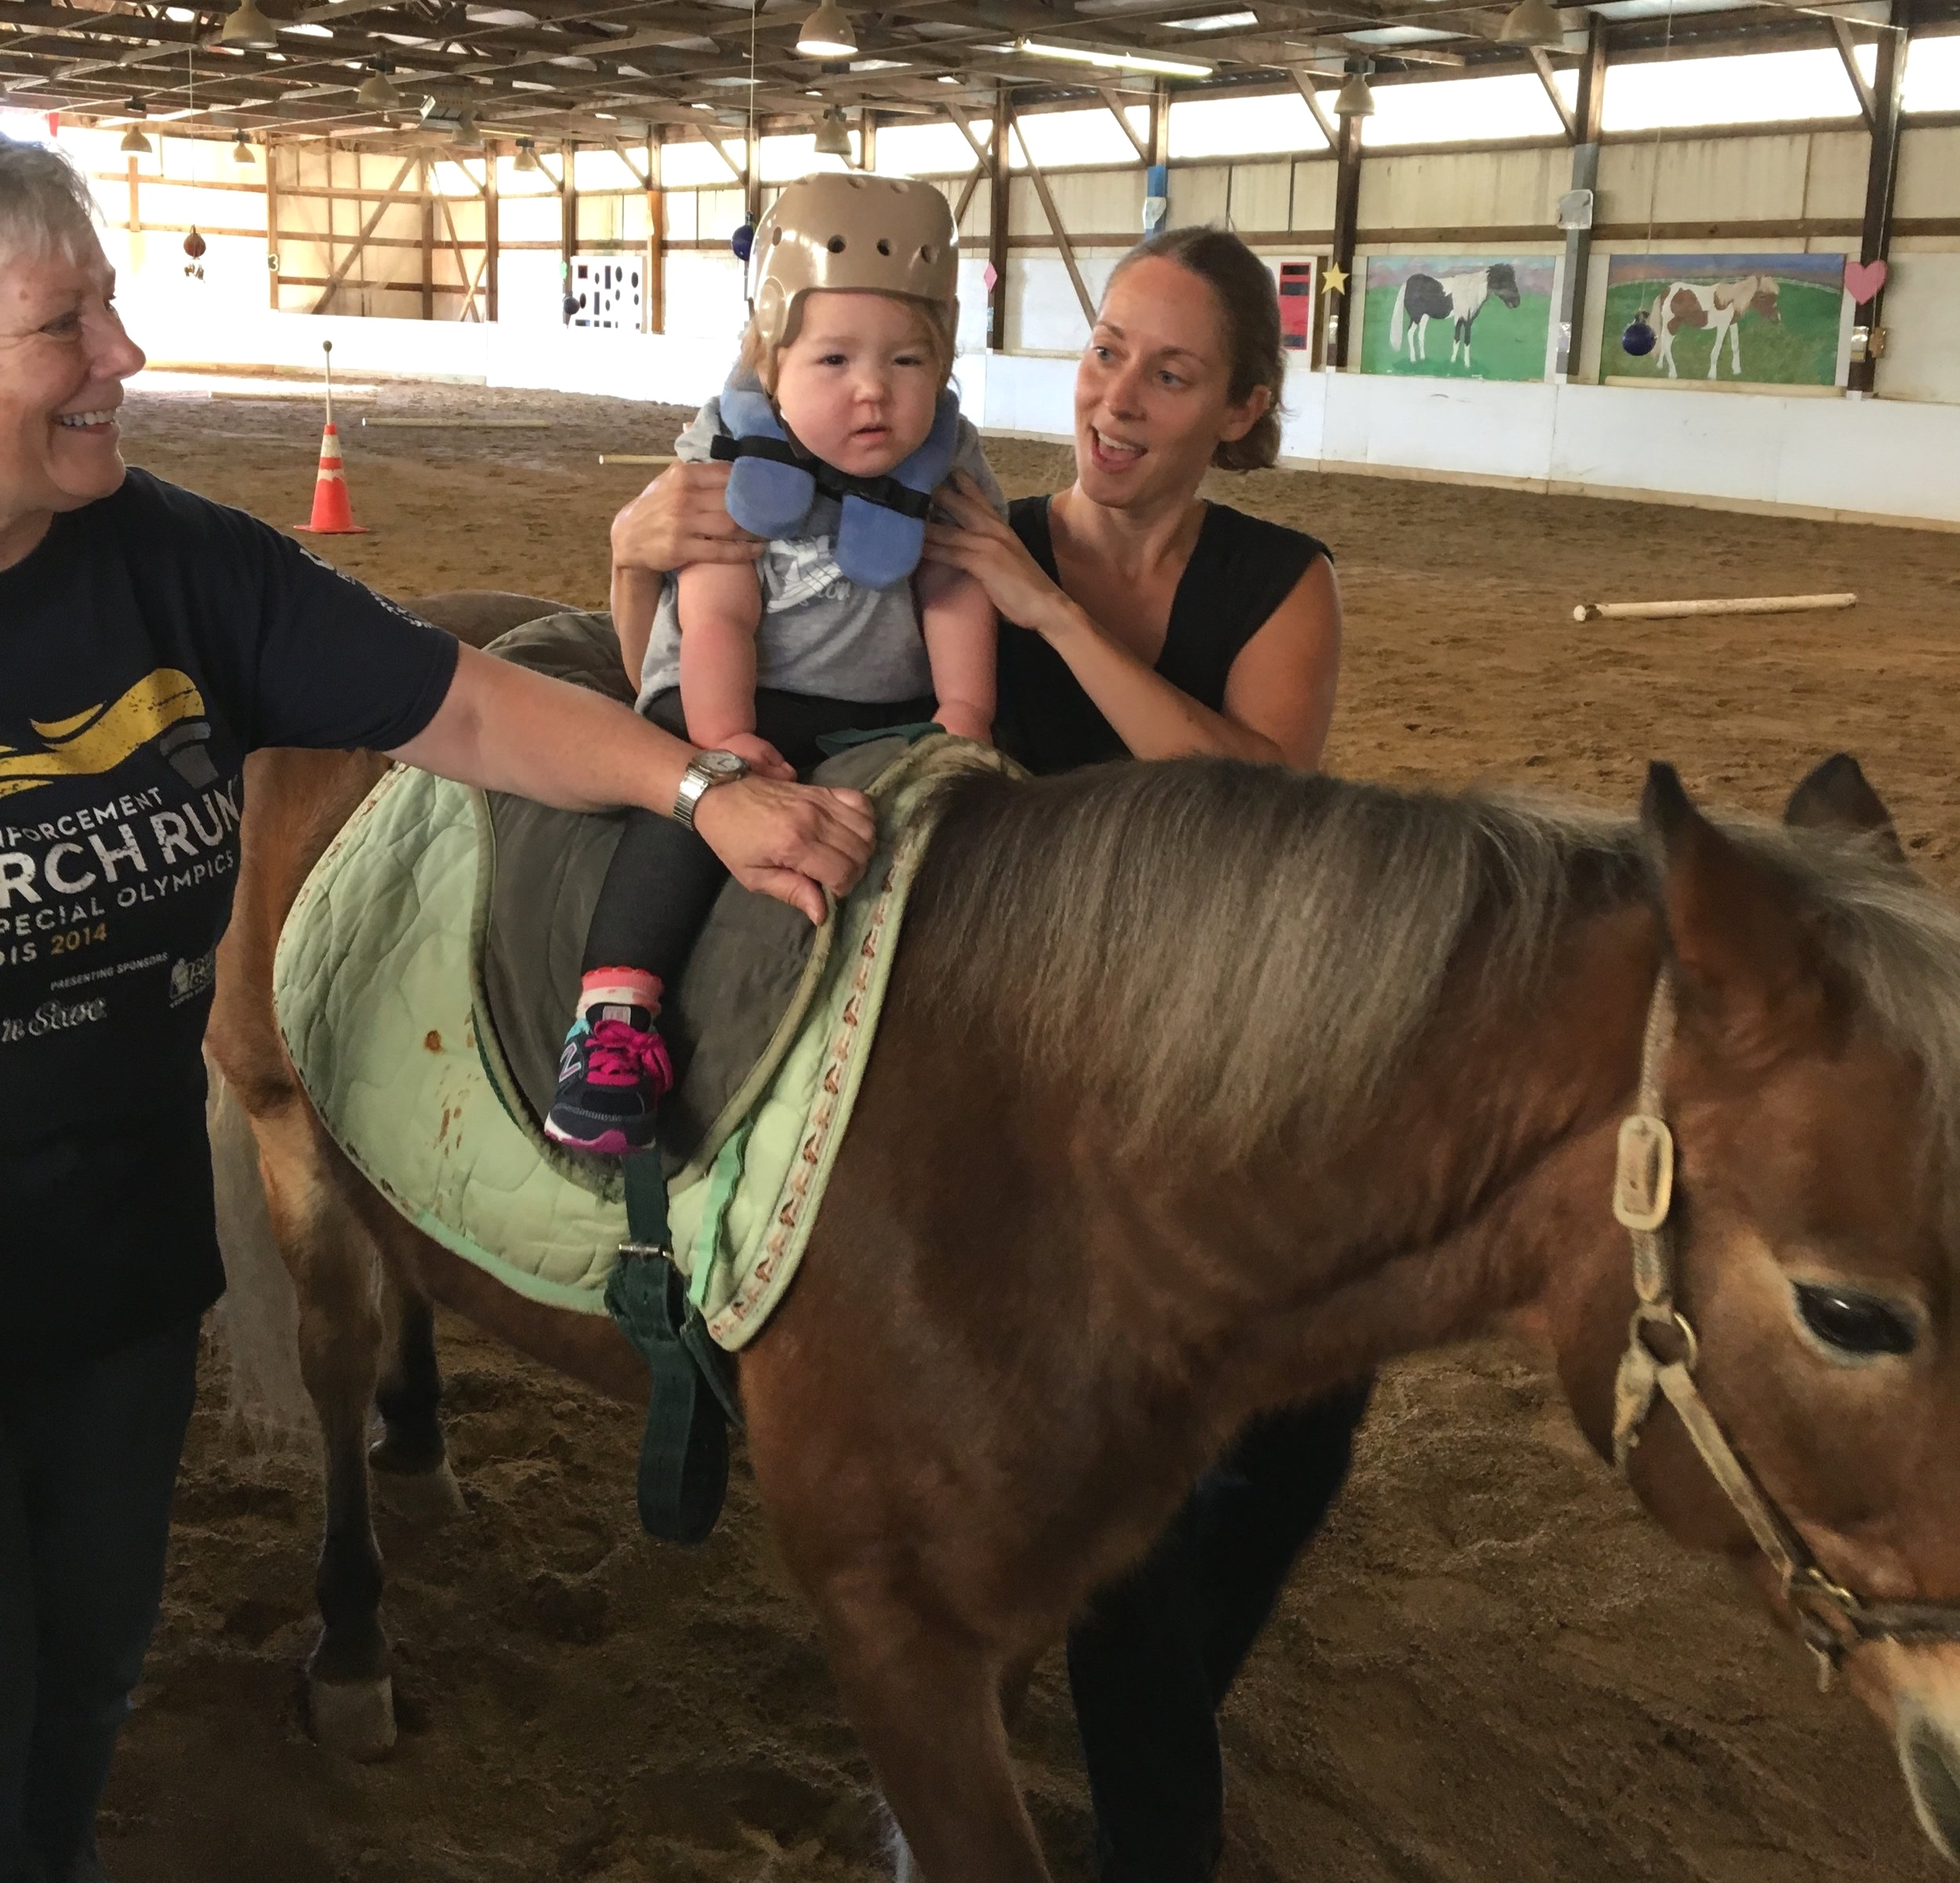 Adelaide and her horse Ernie at hippotherapy October, 2017